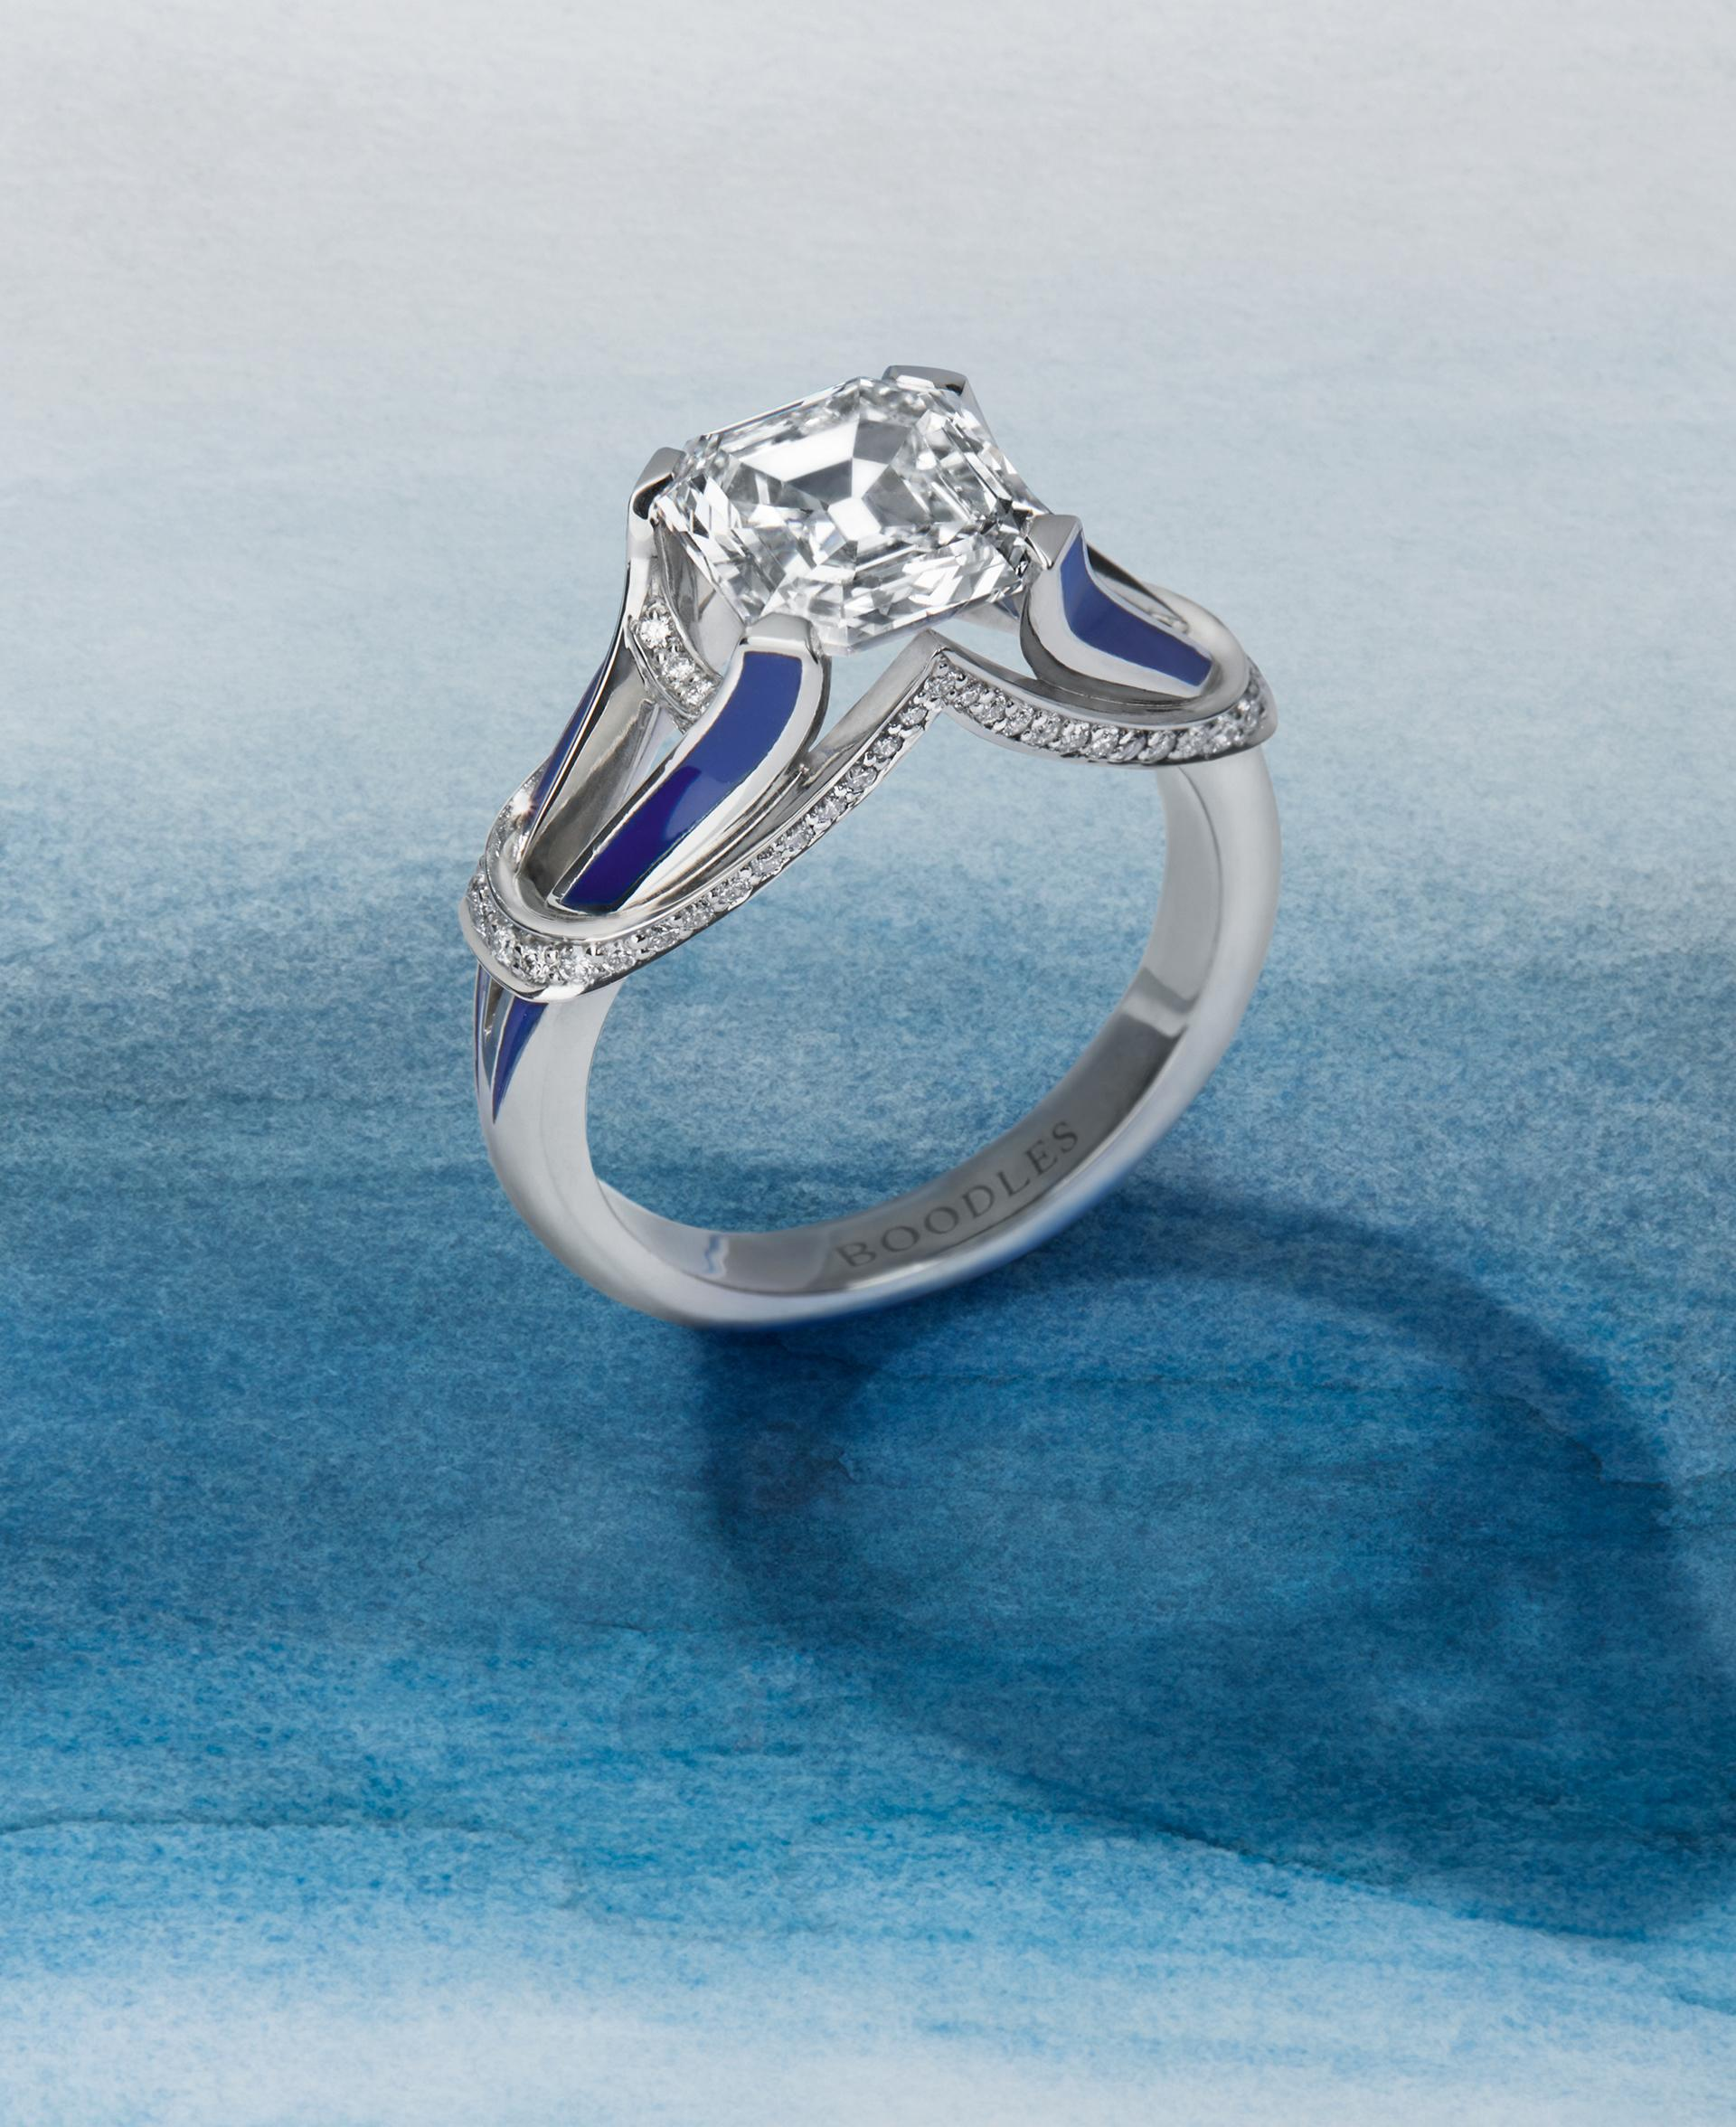 Boodles Travel Collection 'London' Ring